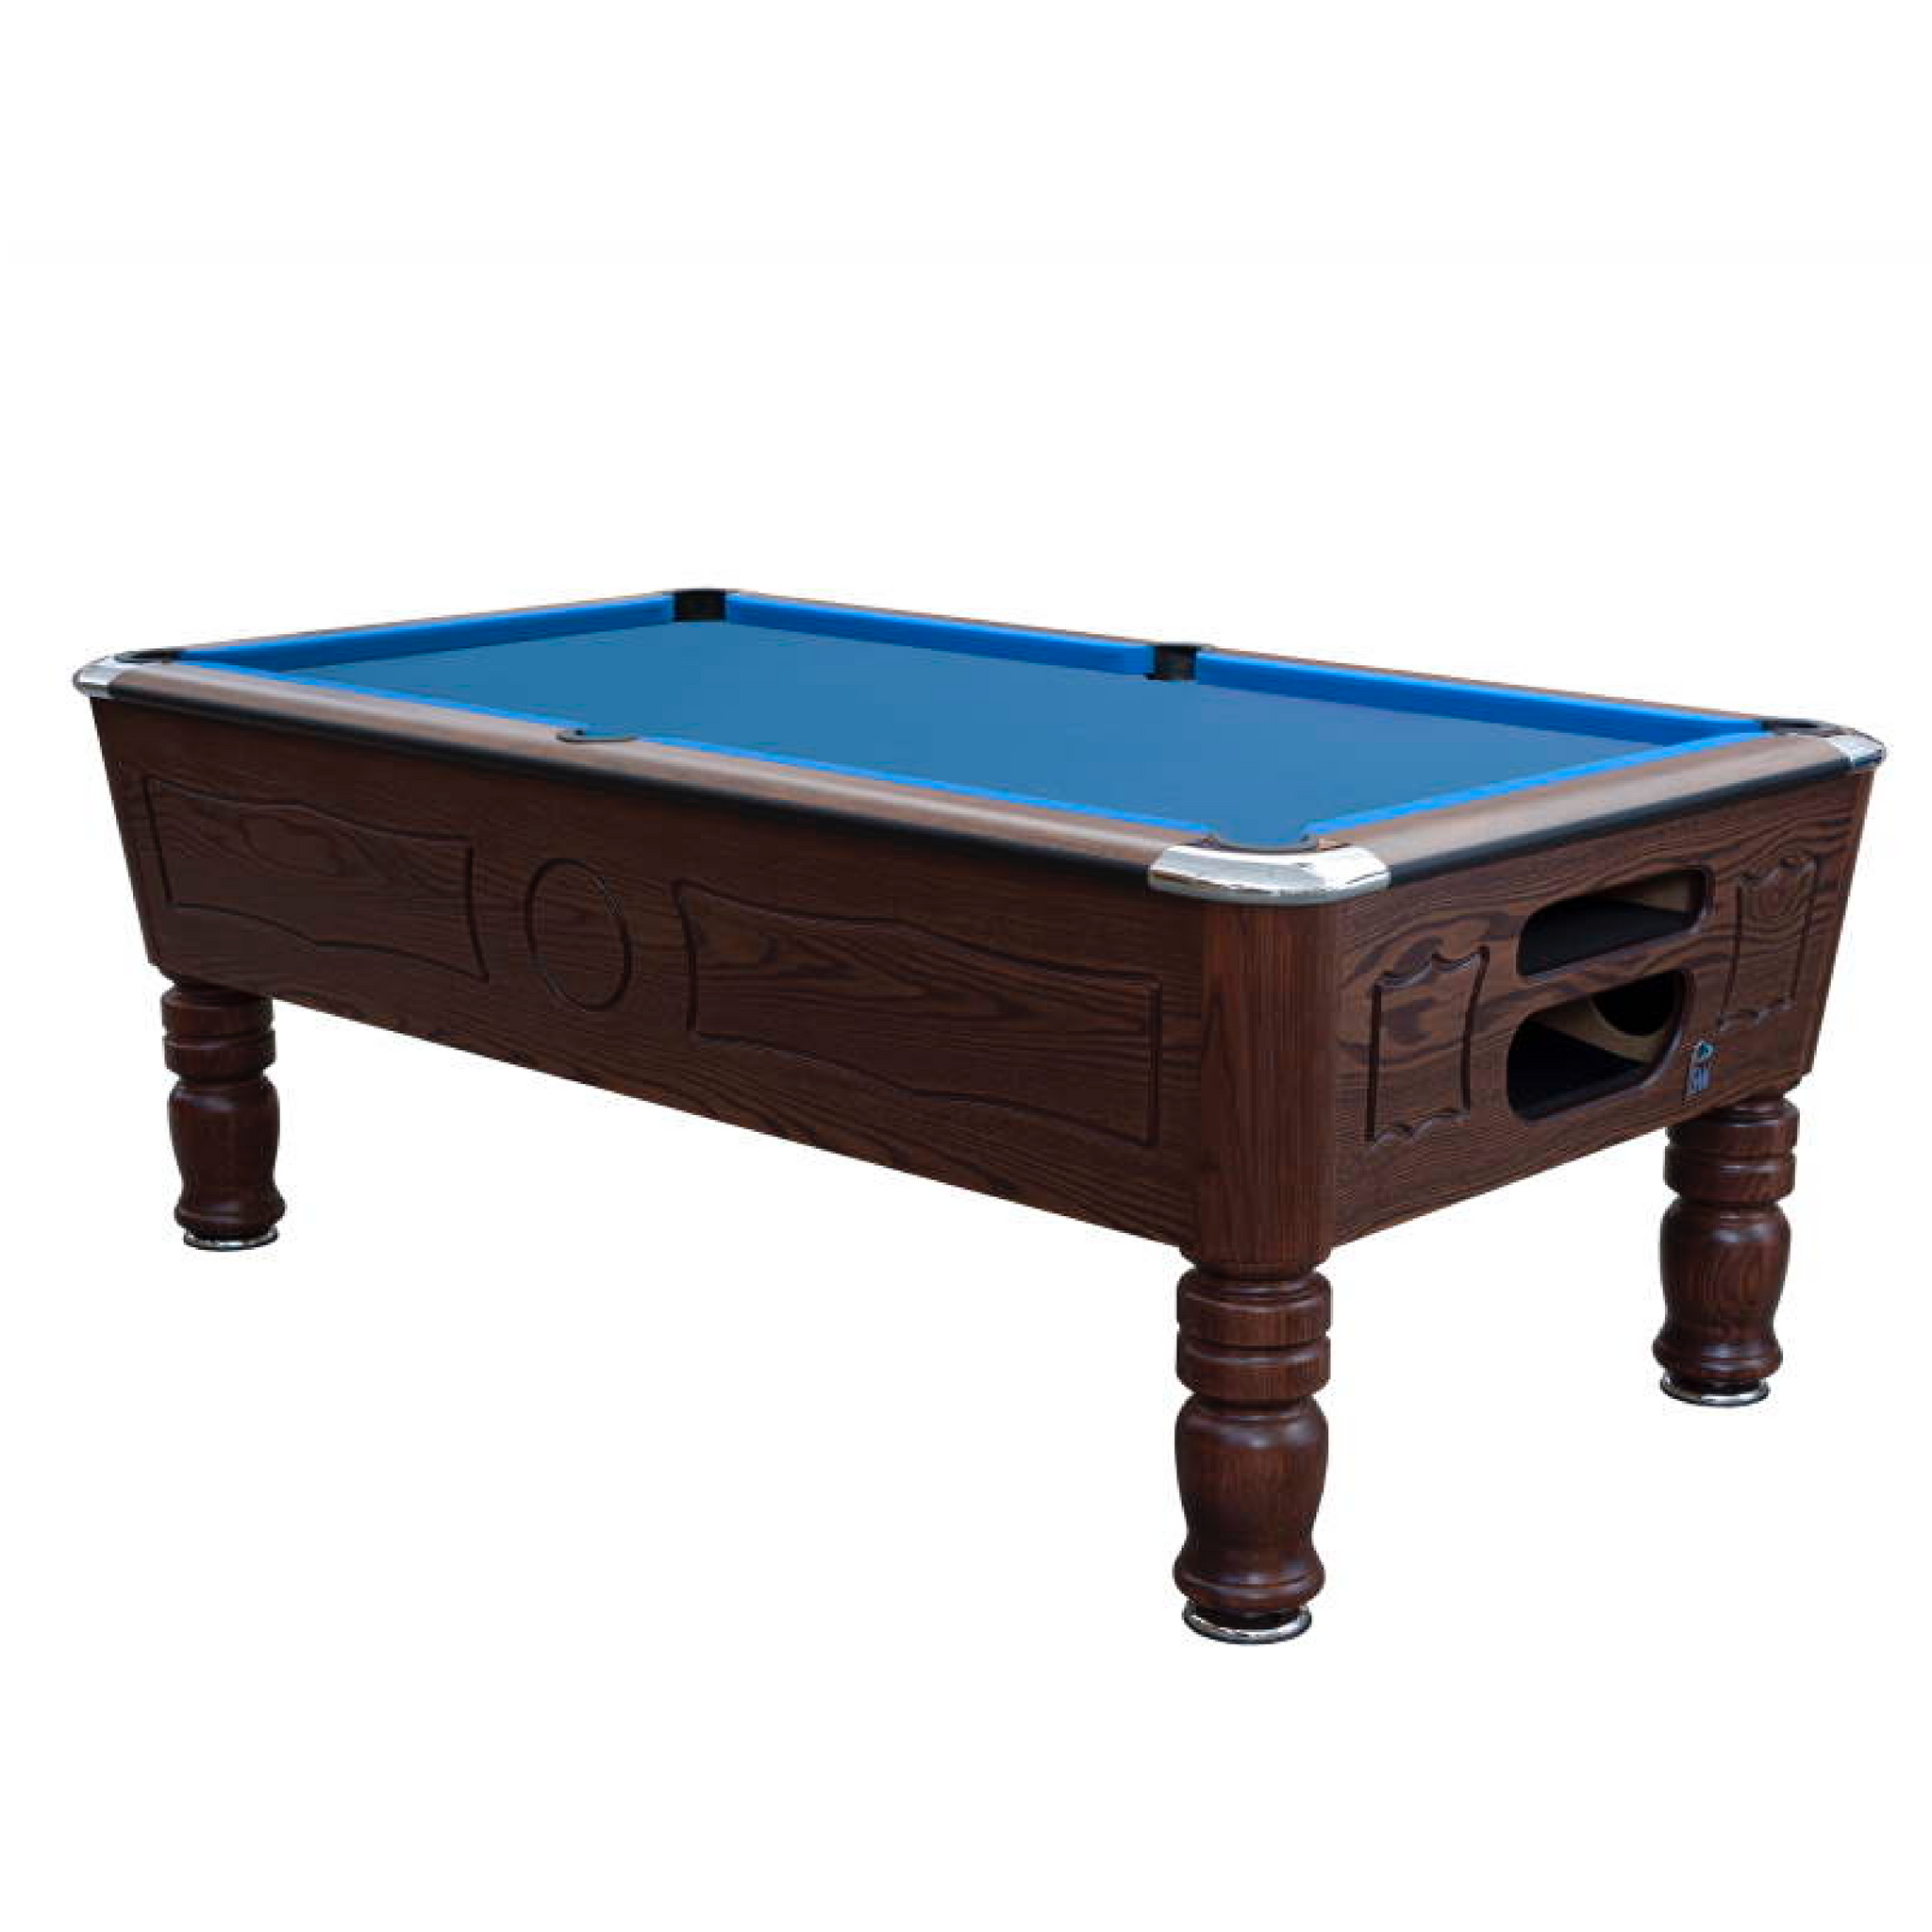 Sam Leisure Balmoral Champion English Pool Table 6ft, 7ft